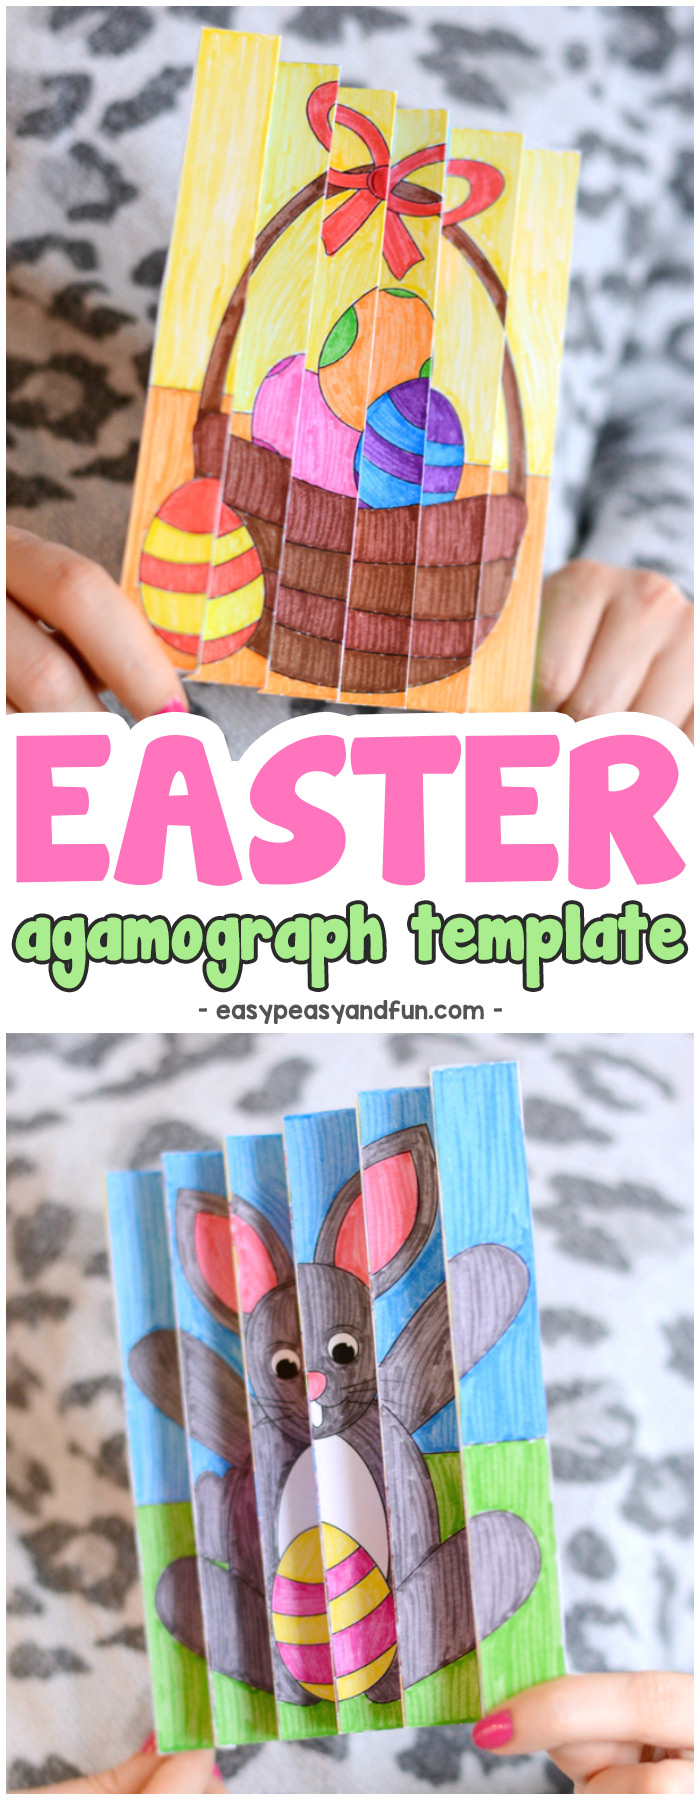 Easter Agamograph Template Paper Craft for Kids #Eastercrafts #craftsforkids #activitiesforkids